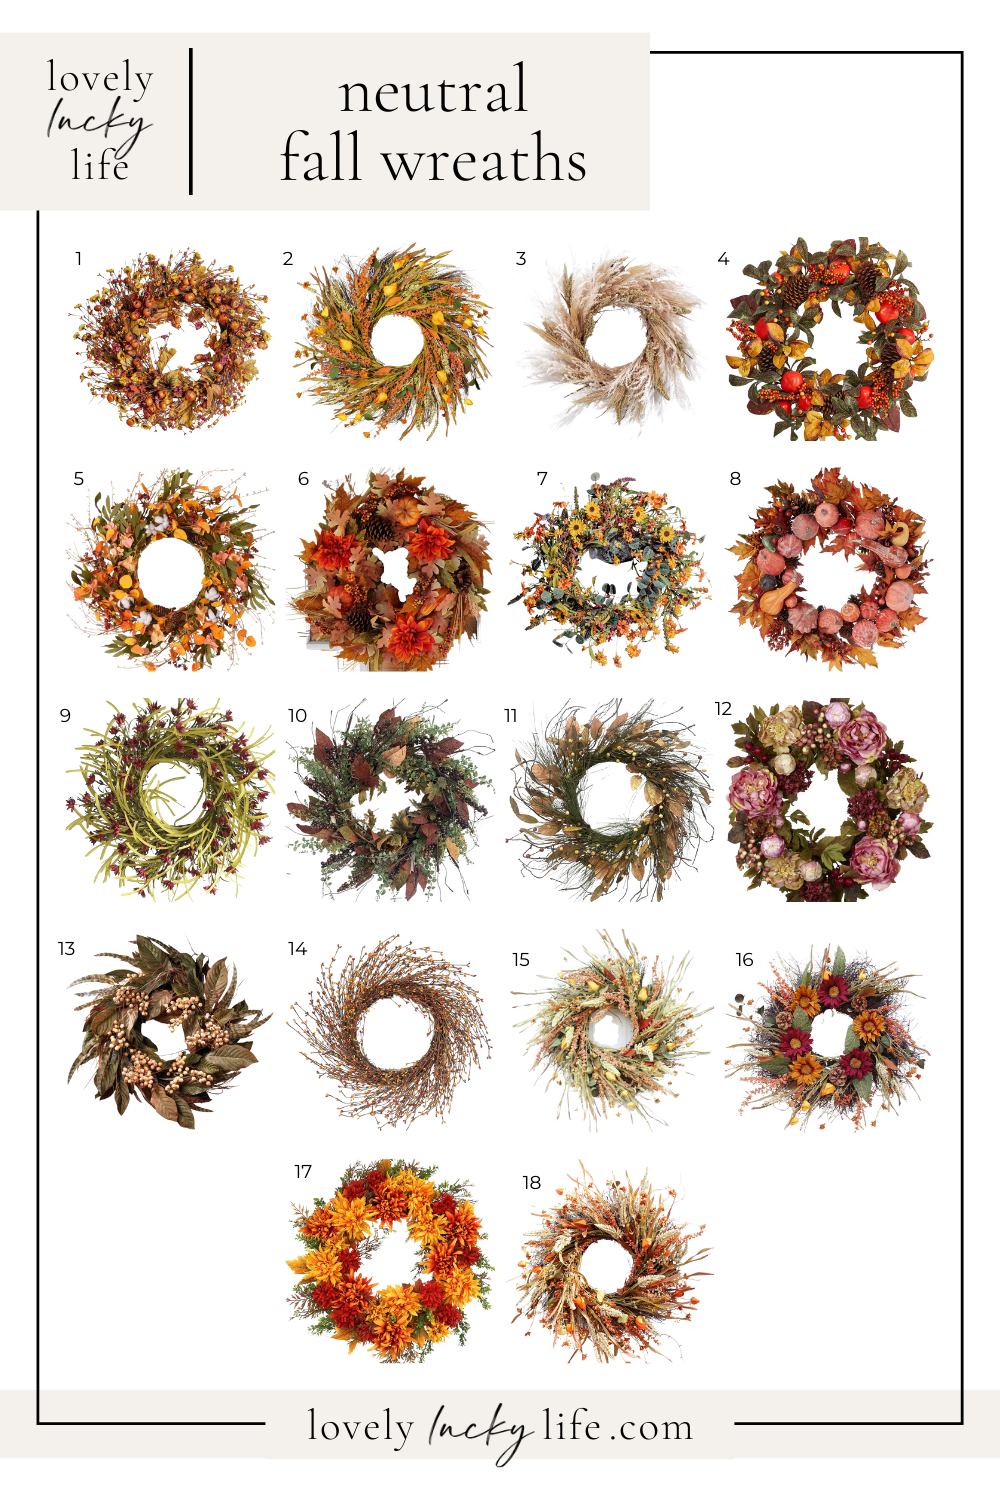 Neutral Fall Wreaths from Lovely Lucky Life